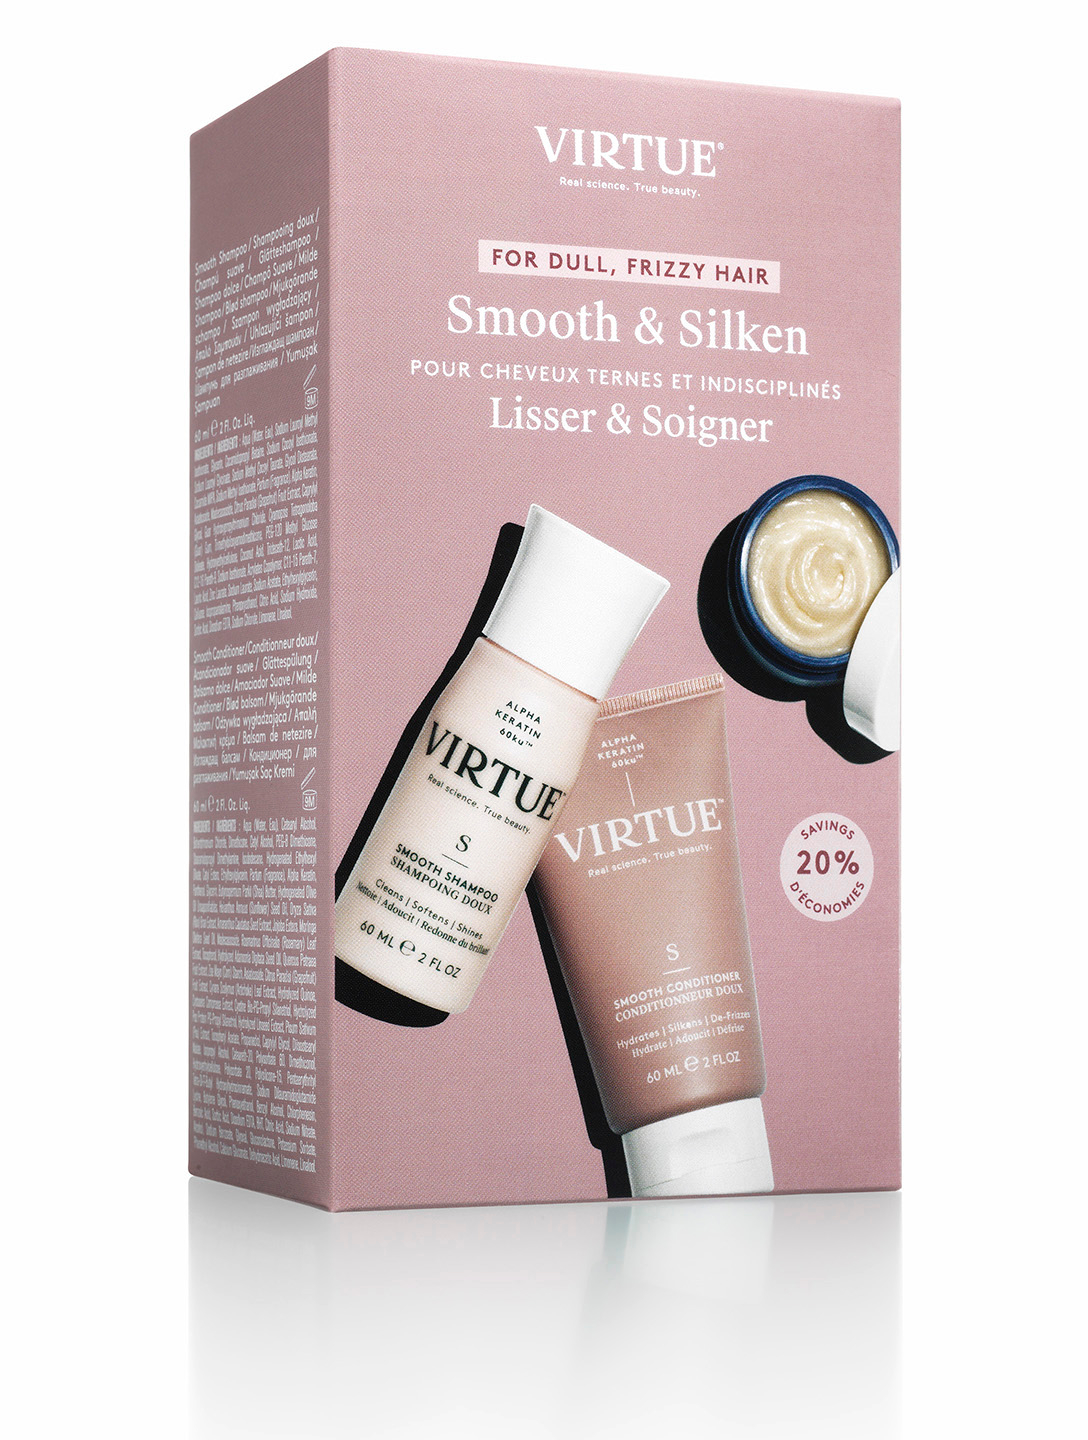 VIRTUE Smooth Discovery Kit Beauty